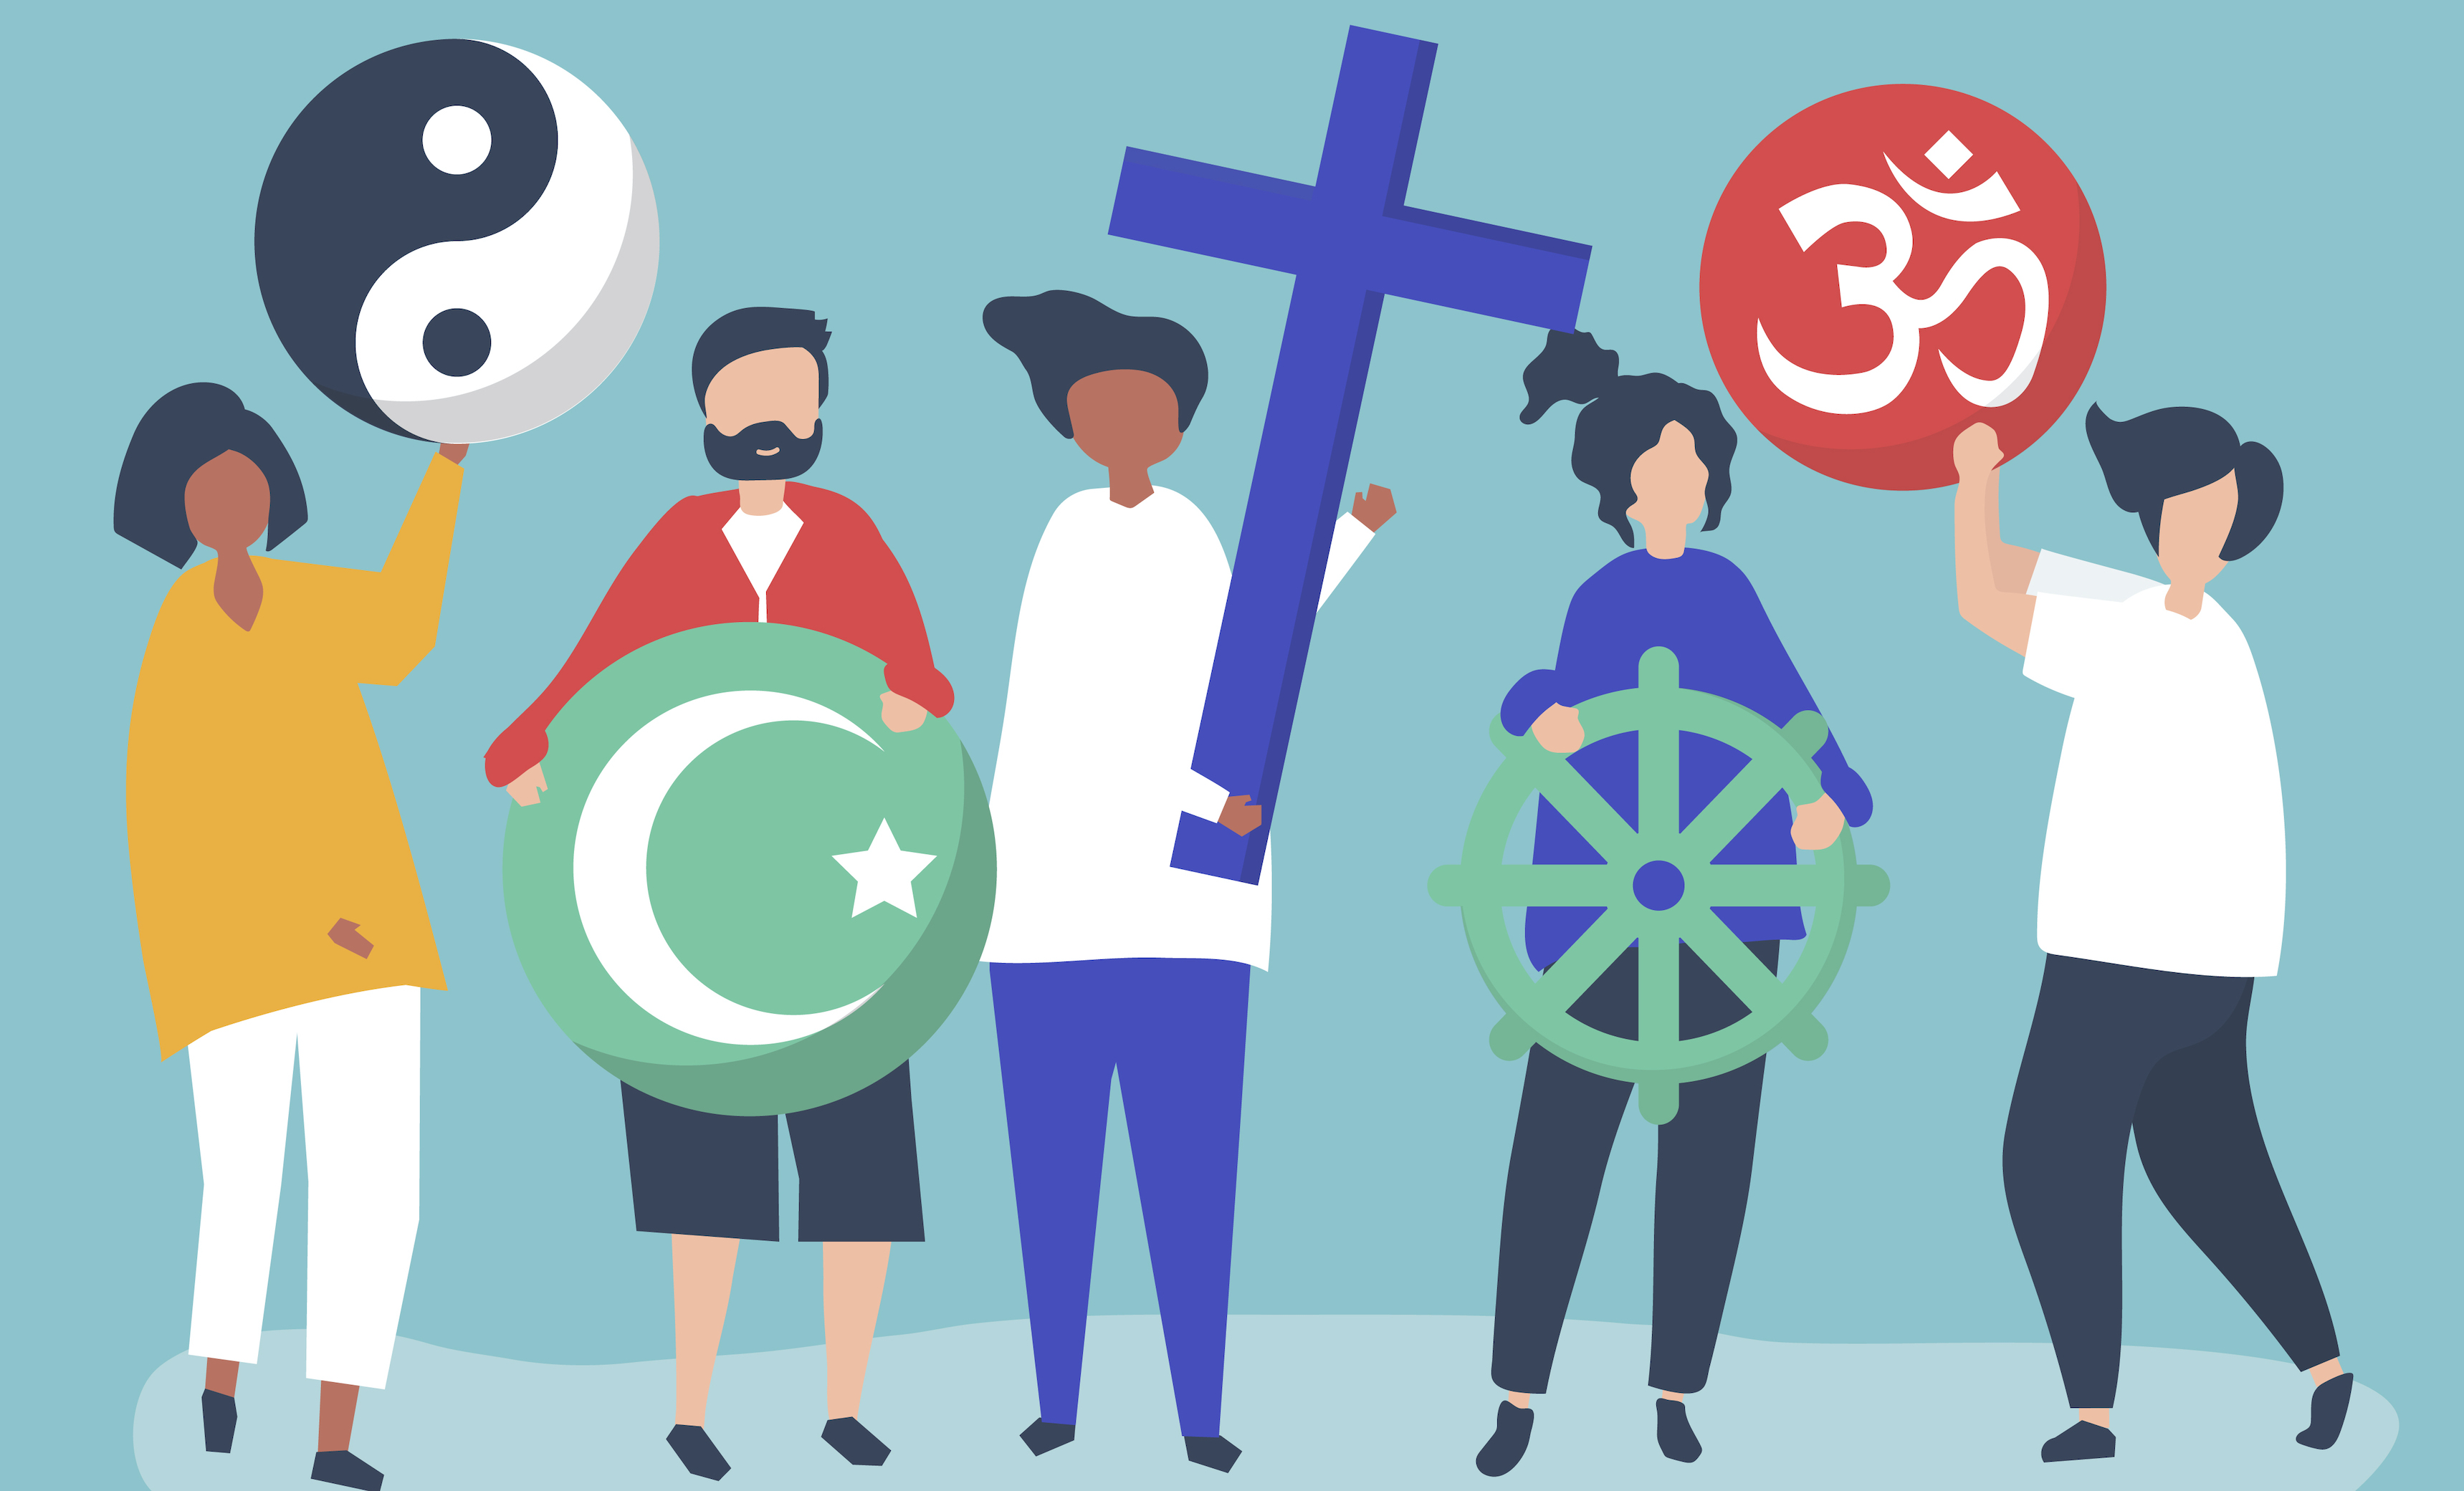 New religious studies strategy needed in schools, campaign argues